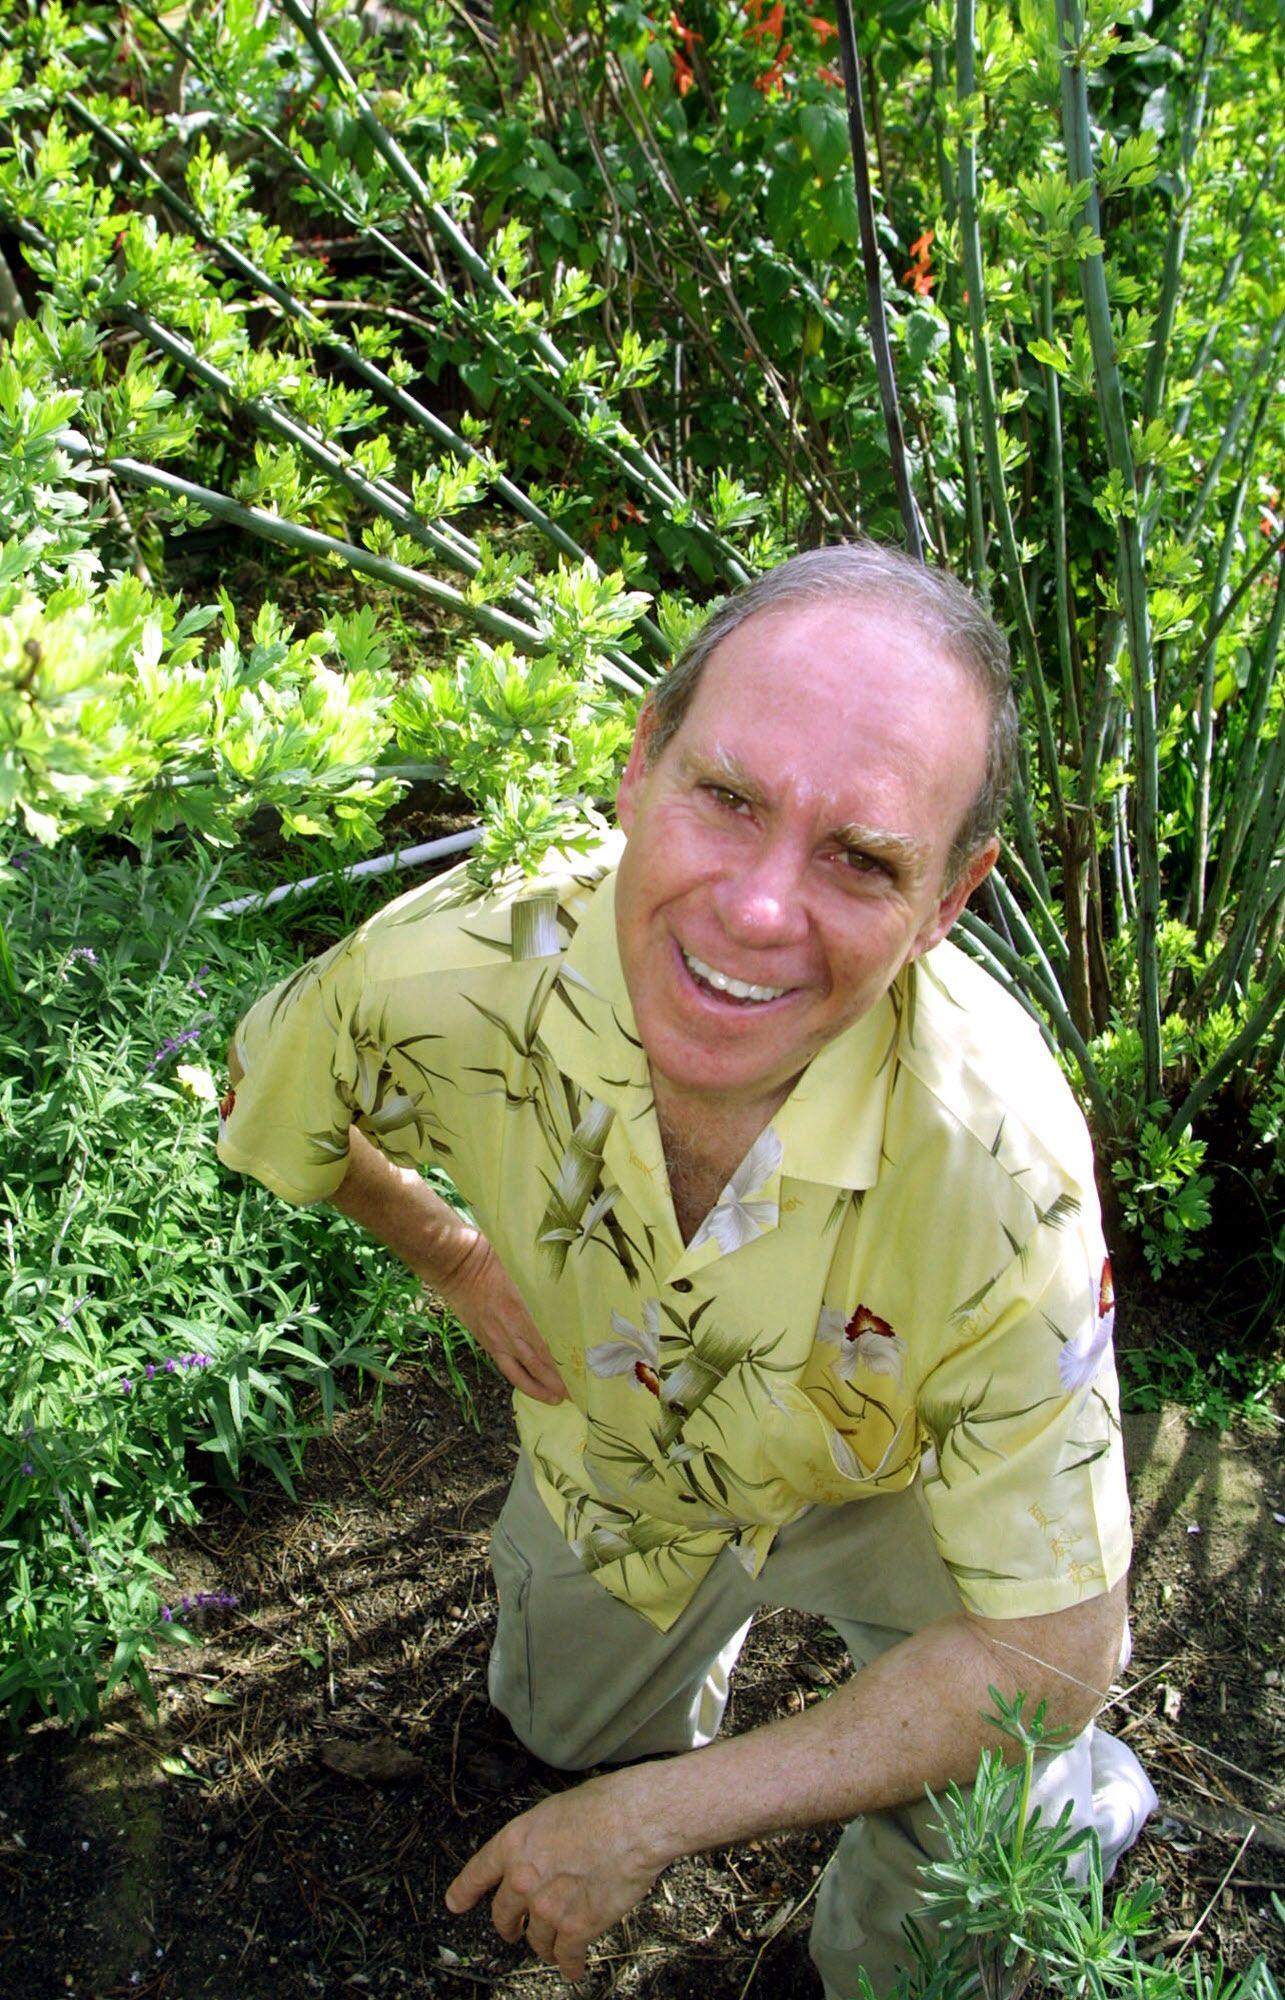 "** FILE ** High Times magazine columnist Ed Rosenthal poses in his home garden in Oakland, Calif., in this Feb. 26, 2002, file photo. Rosenthal, the self-described ""guru of ganja,"" is involved in a court feud with the family of the magazine's founder Tom Forcade over a trust fund consisting of shares in the magazine that Rosenthal suggests could be worth millions of dollars.  (AP Photo/George Nikitin, File)  HOUCHRON CAPTION  (05/11/2003):  Ed Rosenthal, author of the ""Ask Ed"" column in High Times, complains that he has been unfairly cut out of a trust-fund-sharing deal for employees of the magazine."